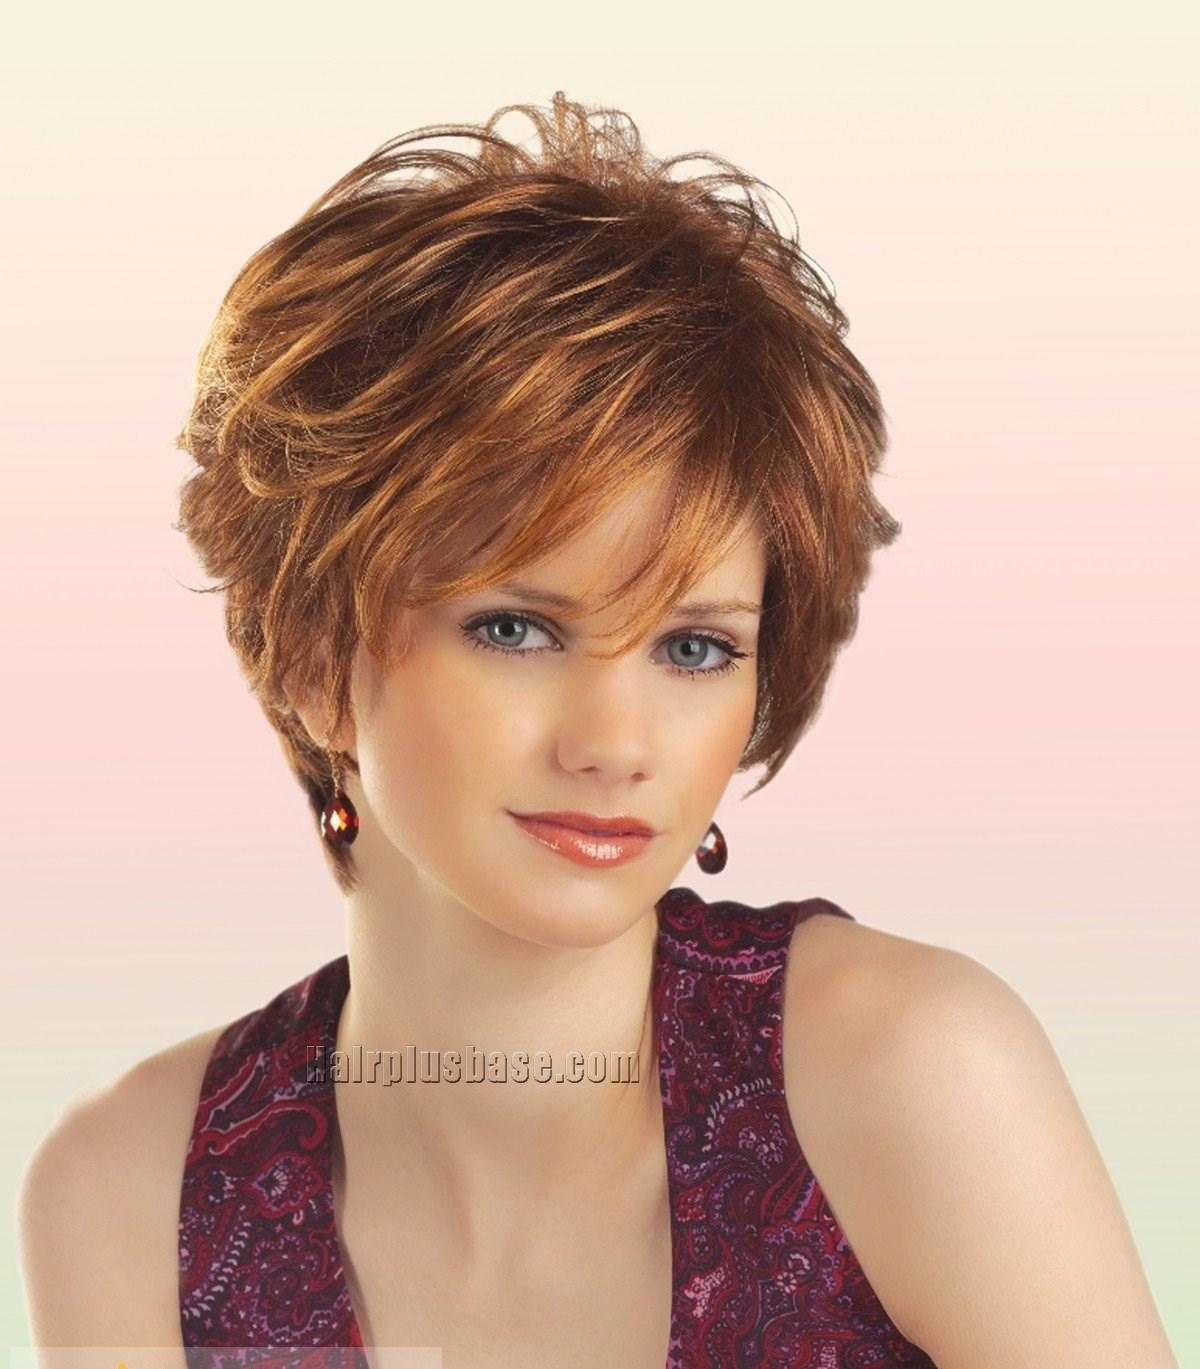 The Best 100 Human Hair Perfect Custom Aubrey S Hairstyle Medium Short Straight Lace Wig Pictures